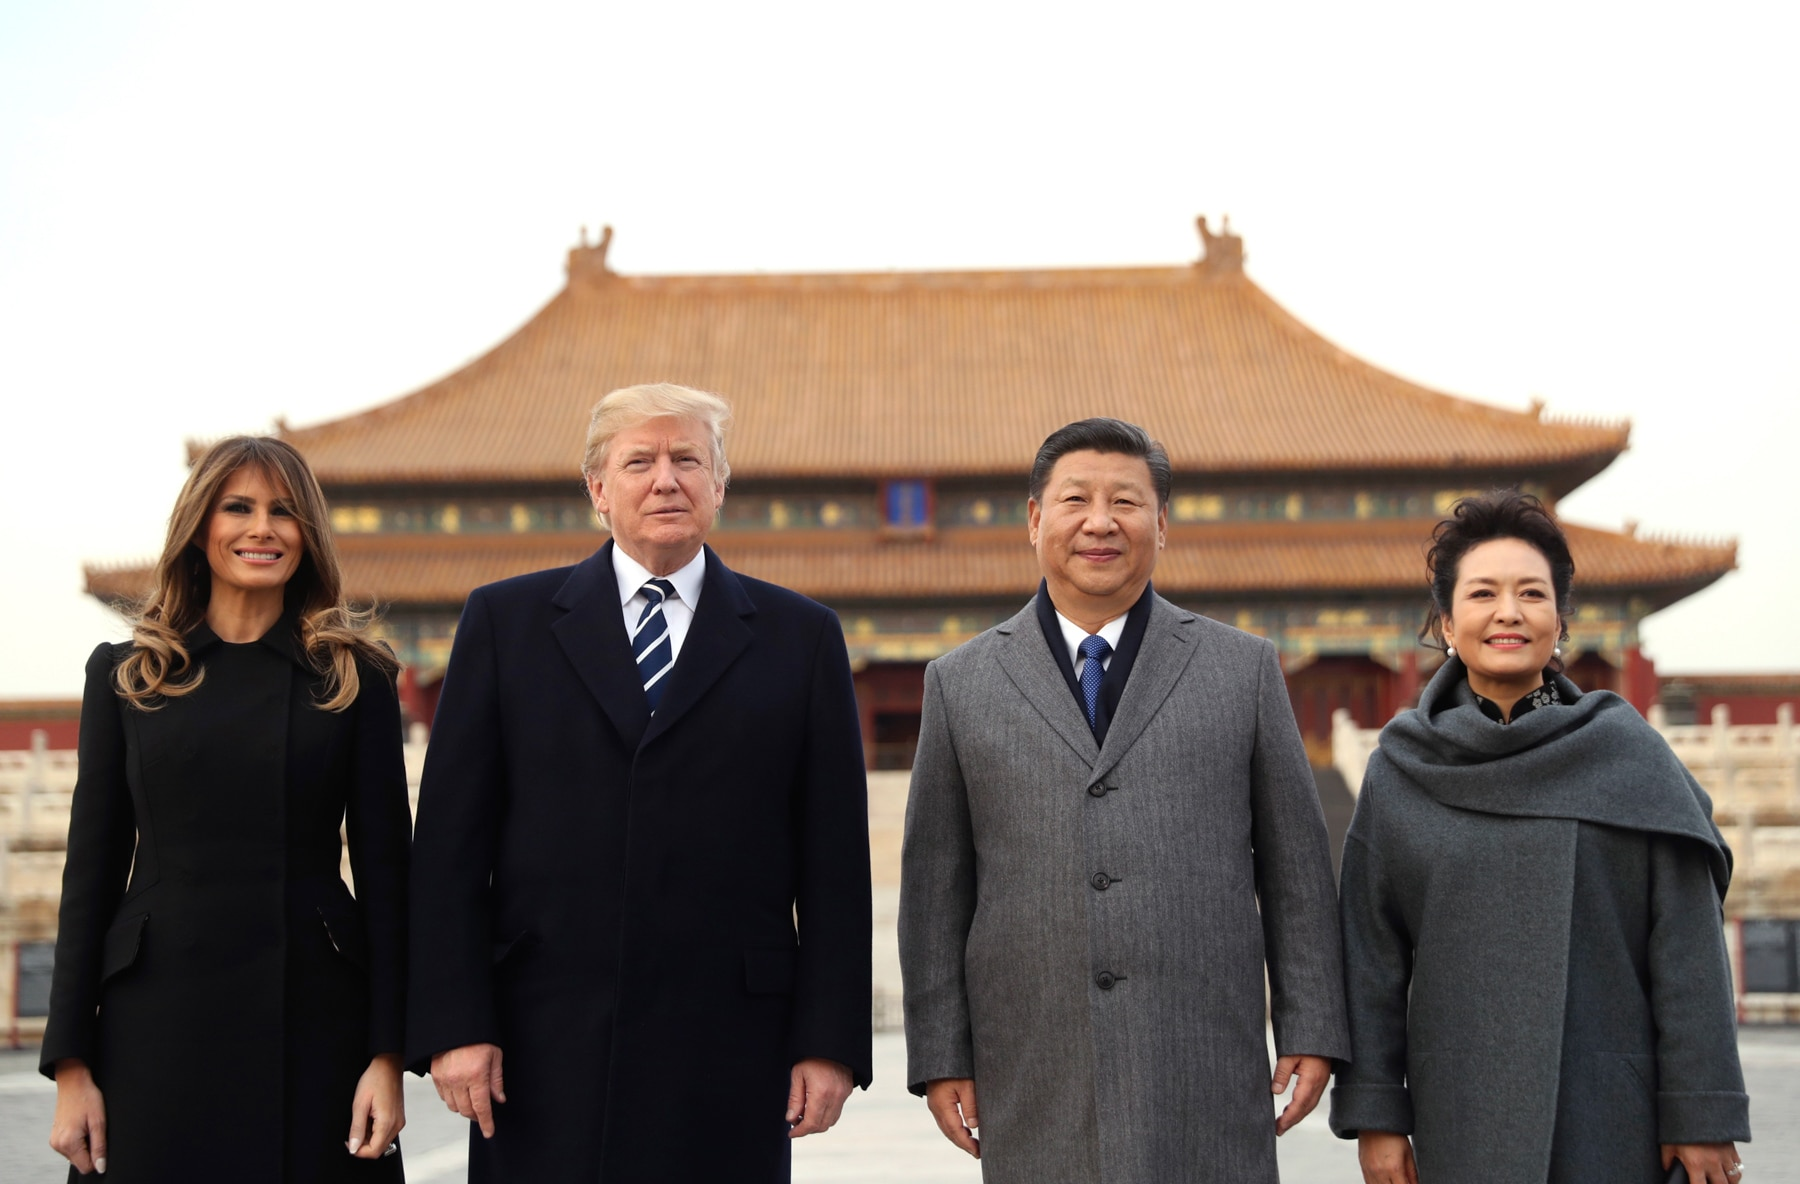 Melania Trump, President Trump, Chinese President Xi Jinping and Peng Liyuan standing together in front of Chinese building (© AP Images)